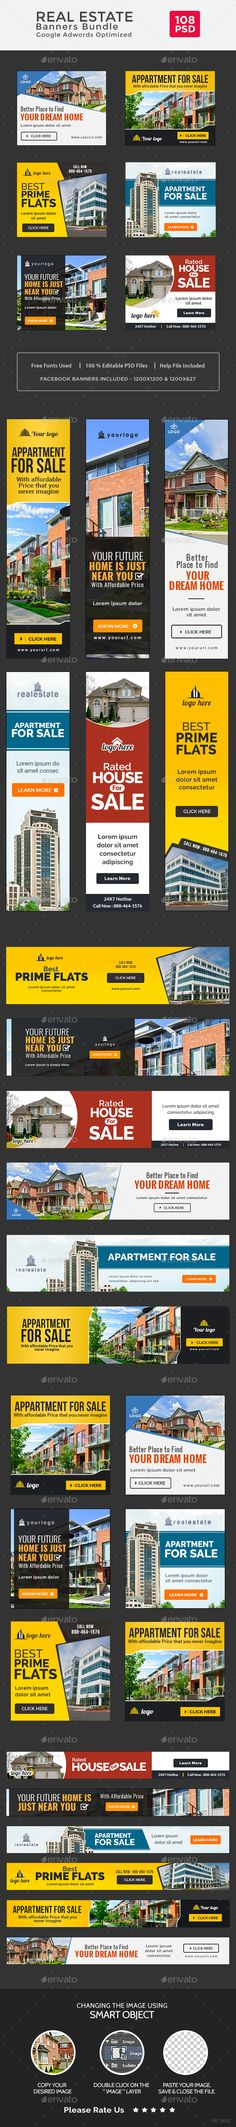 2032 best banners images on pinterest banner template web banners real estate banners bundle 6 sets 108 banners banner templateweb maxwellsz